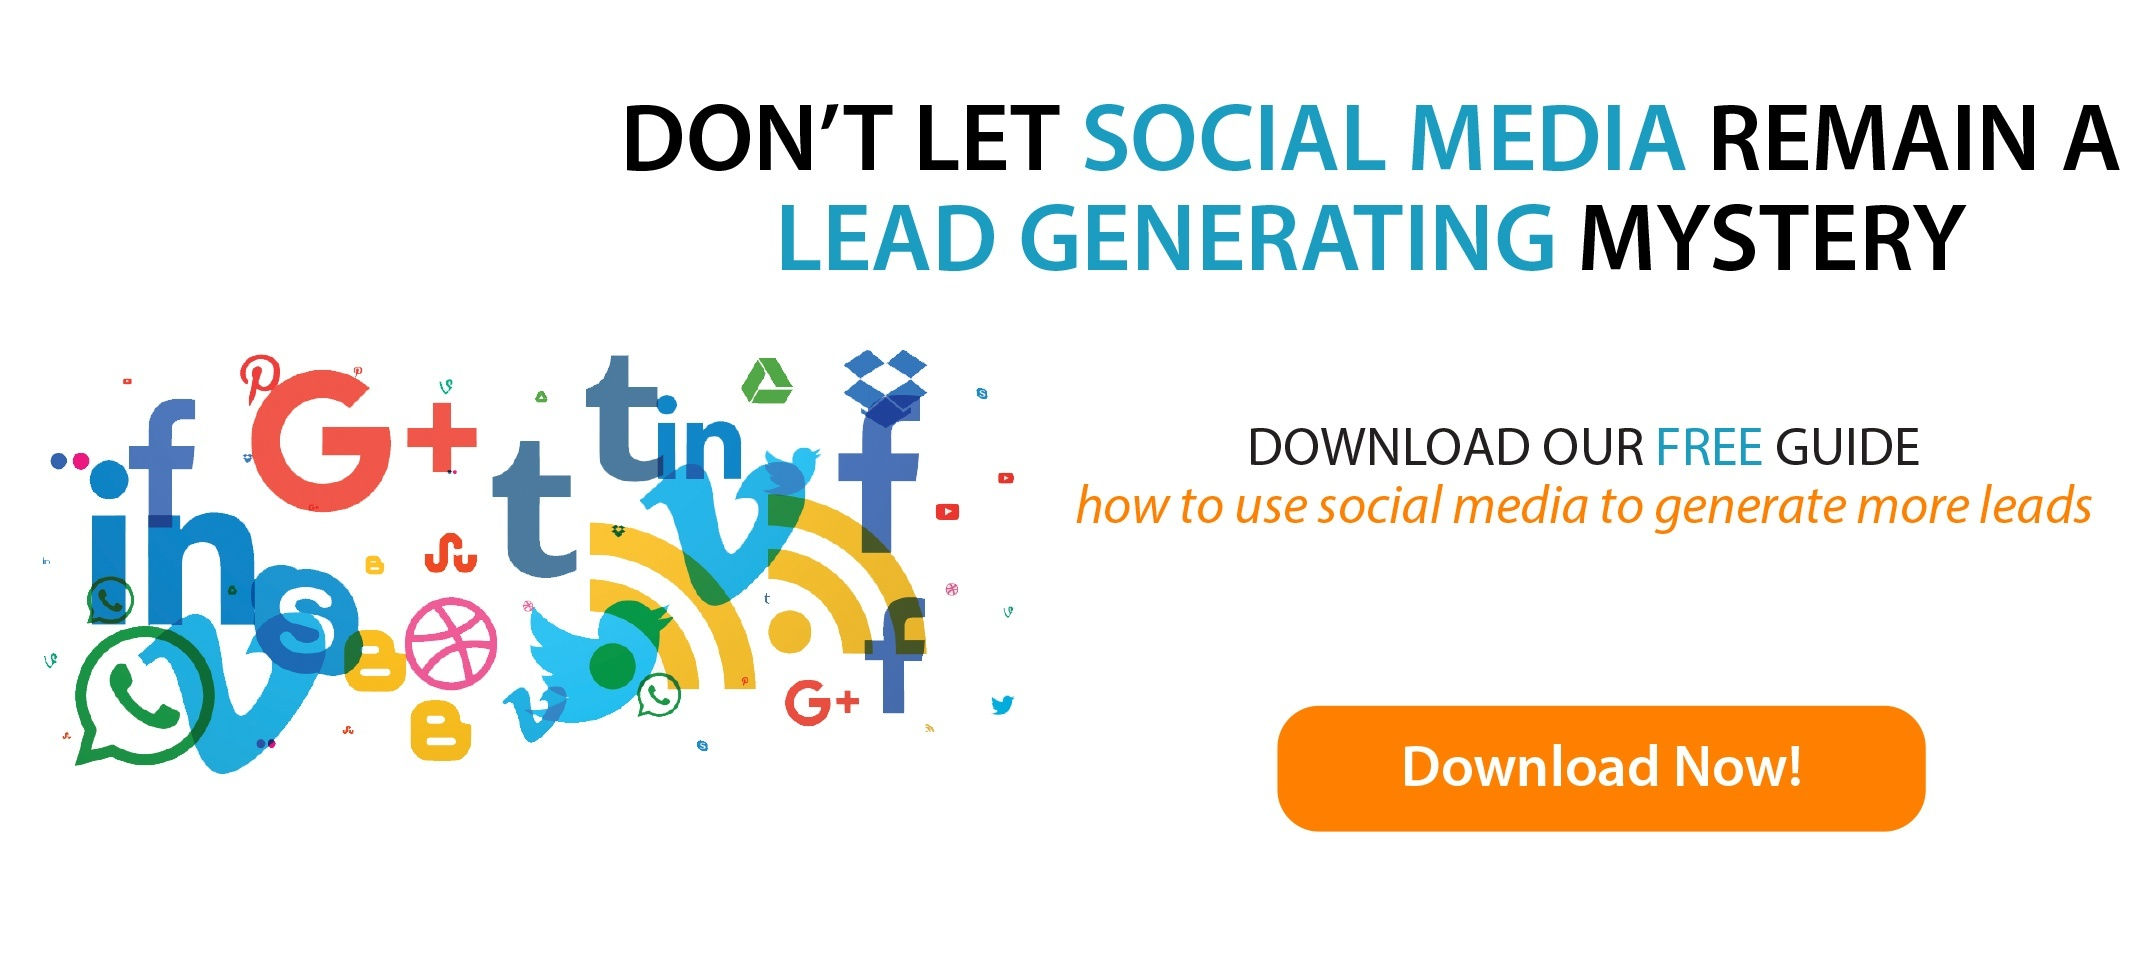 Don't let social media remain a lead generating mystery.